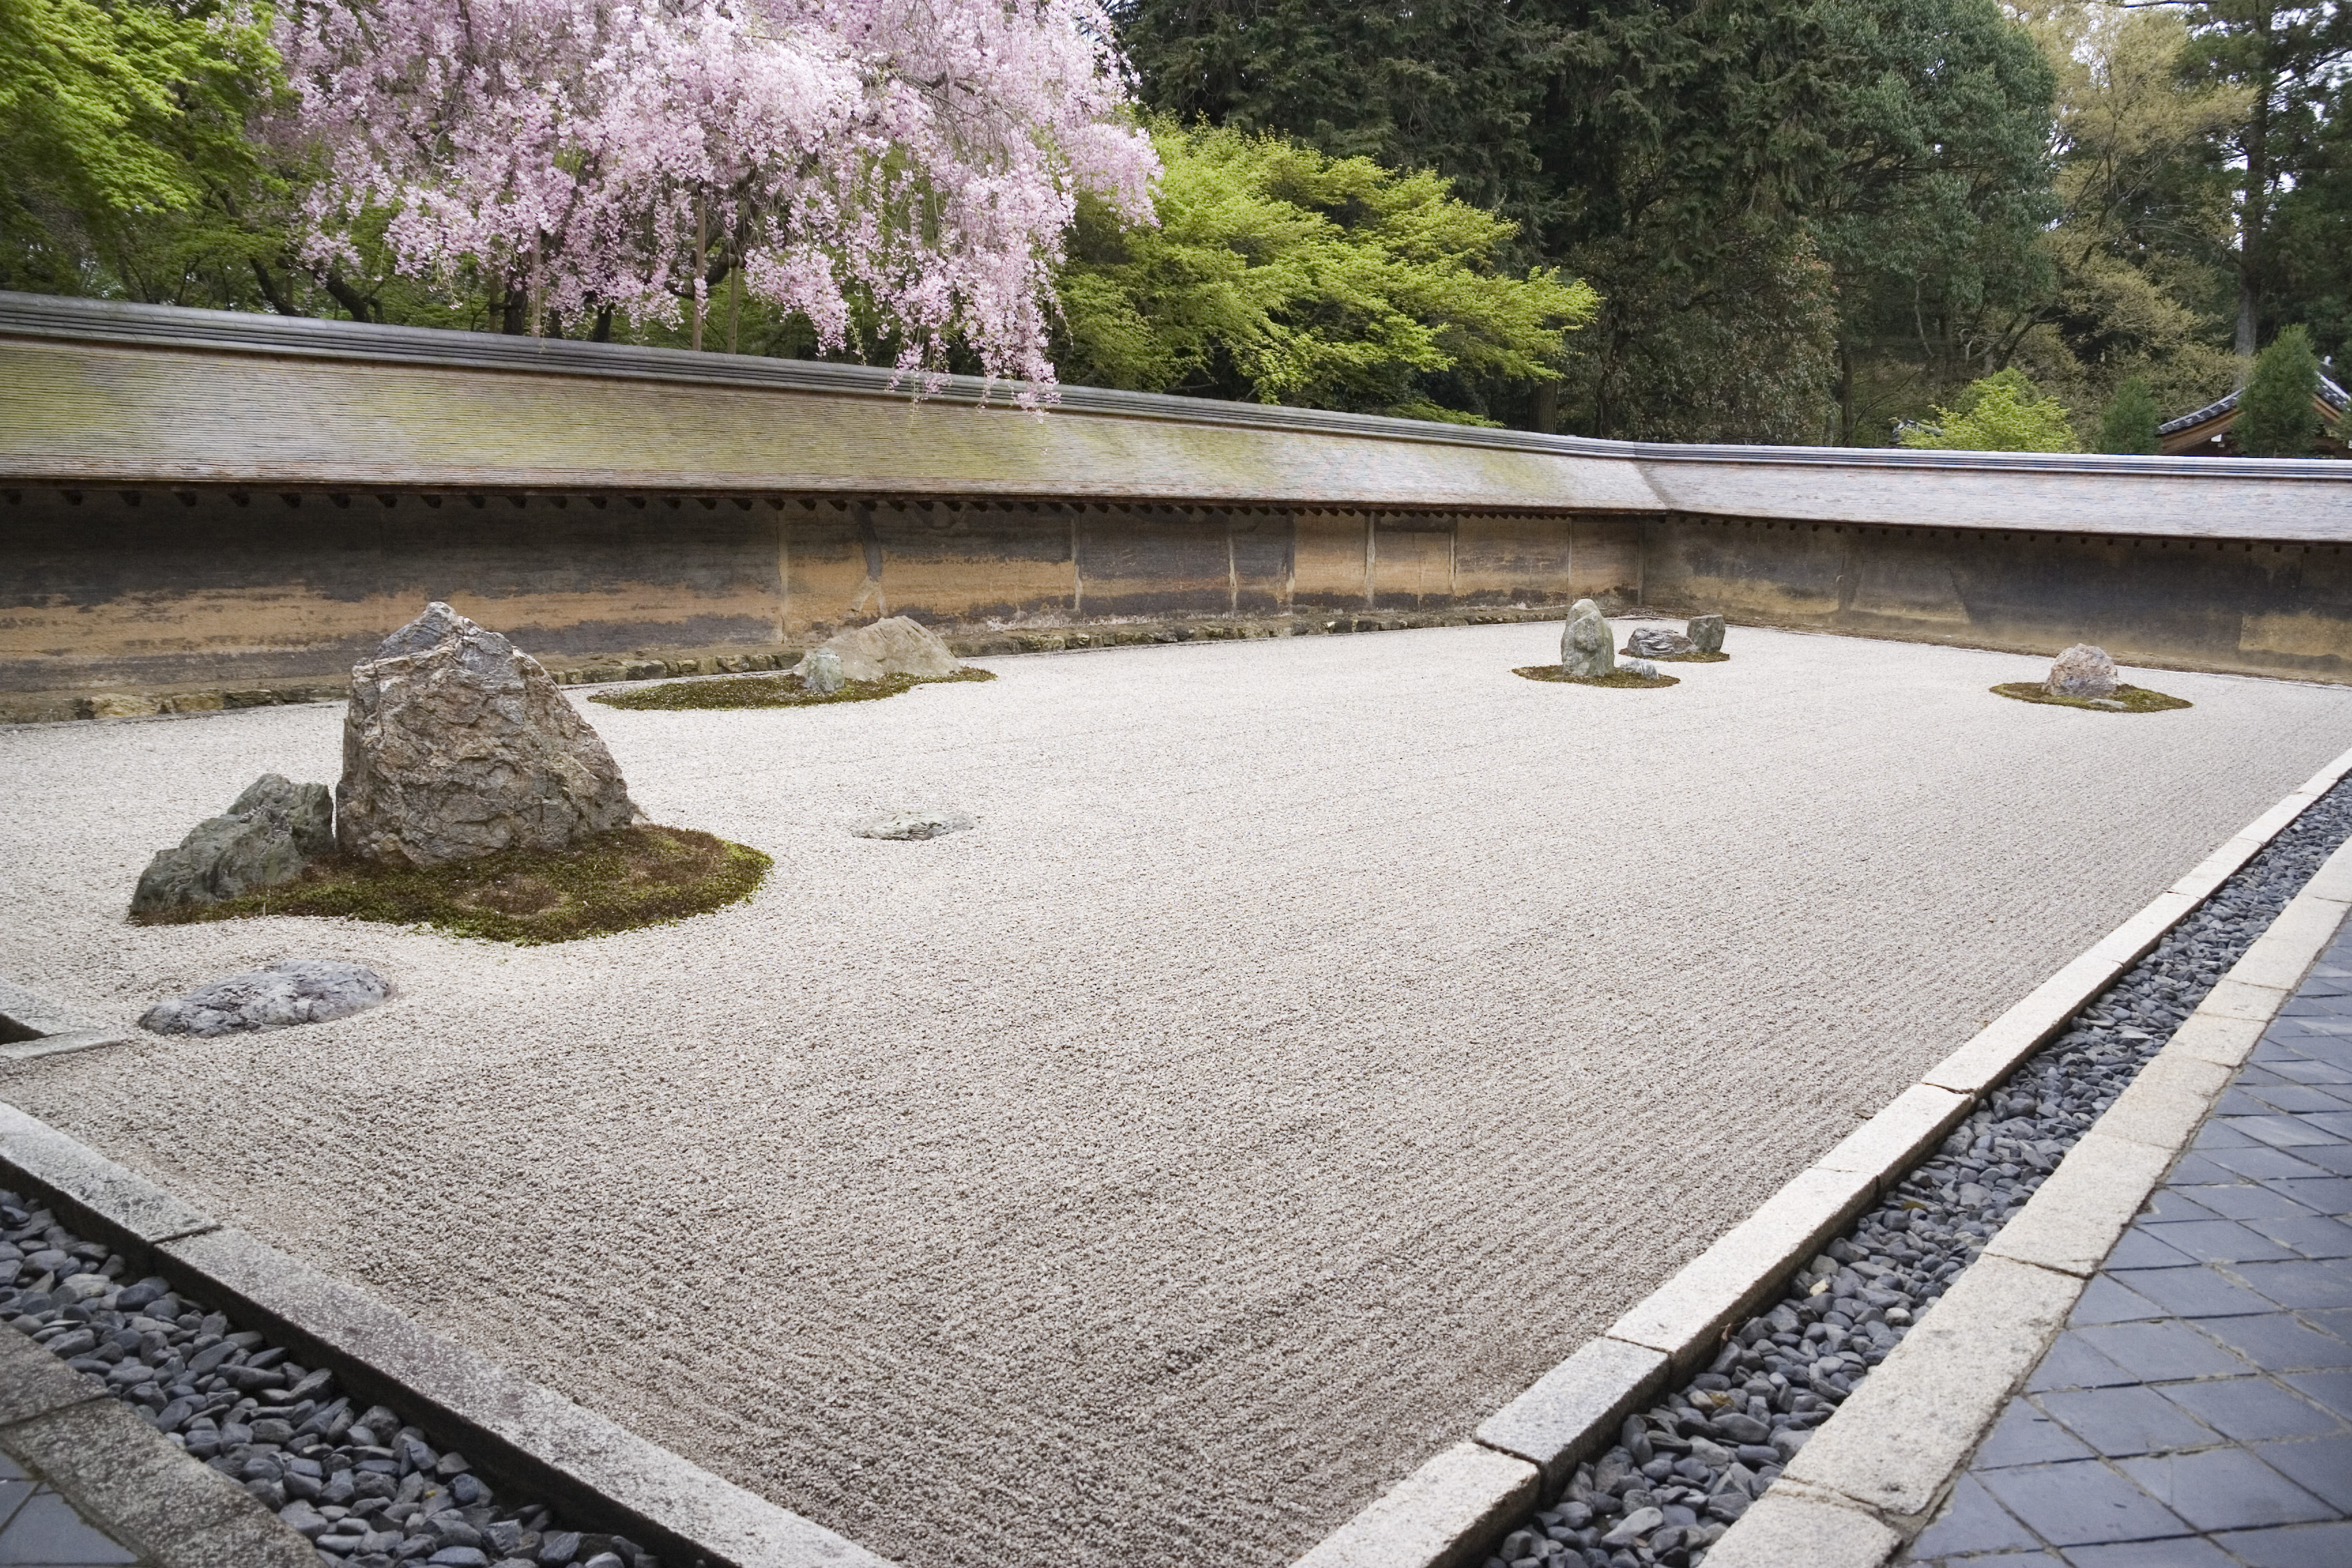 Japanese rock garden - Wikipedia on zen gardens in japan, backyard landscaping, home design and landscaping, zen plans, zen patio ideas, western gardens landscaping, pool design and landscaping, yard landscaping, zen landscape, zen sand designs, zen wall design, dog friendly landscaping, zen flowers designs to soothe, zen looking plants,